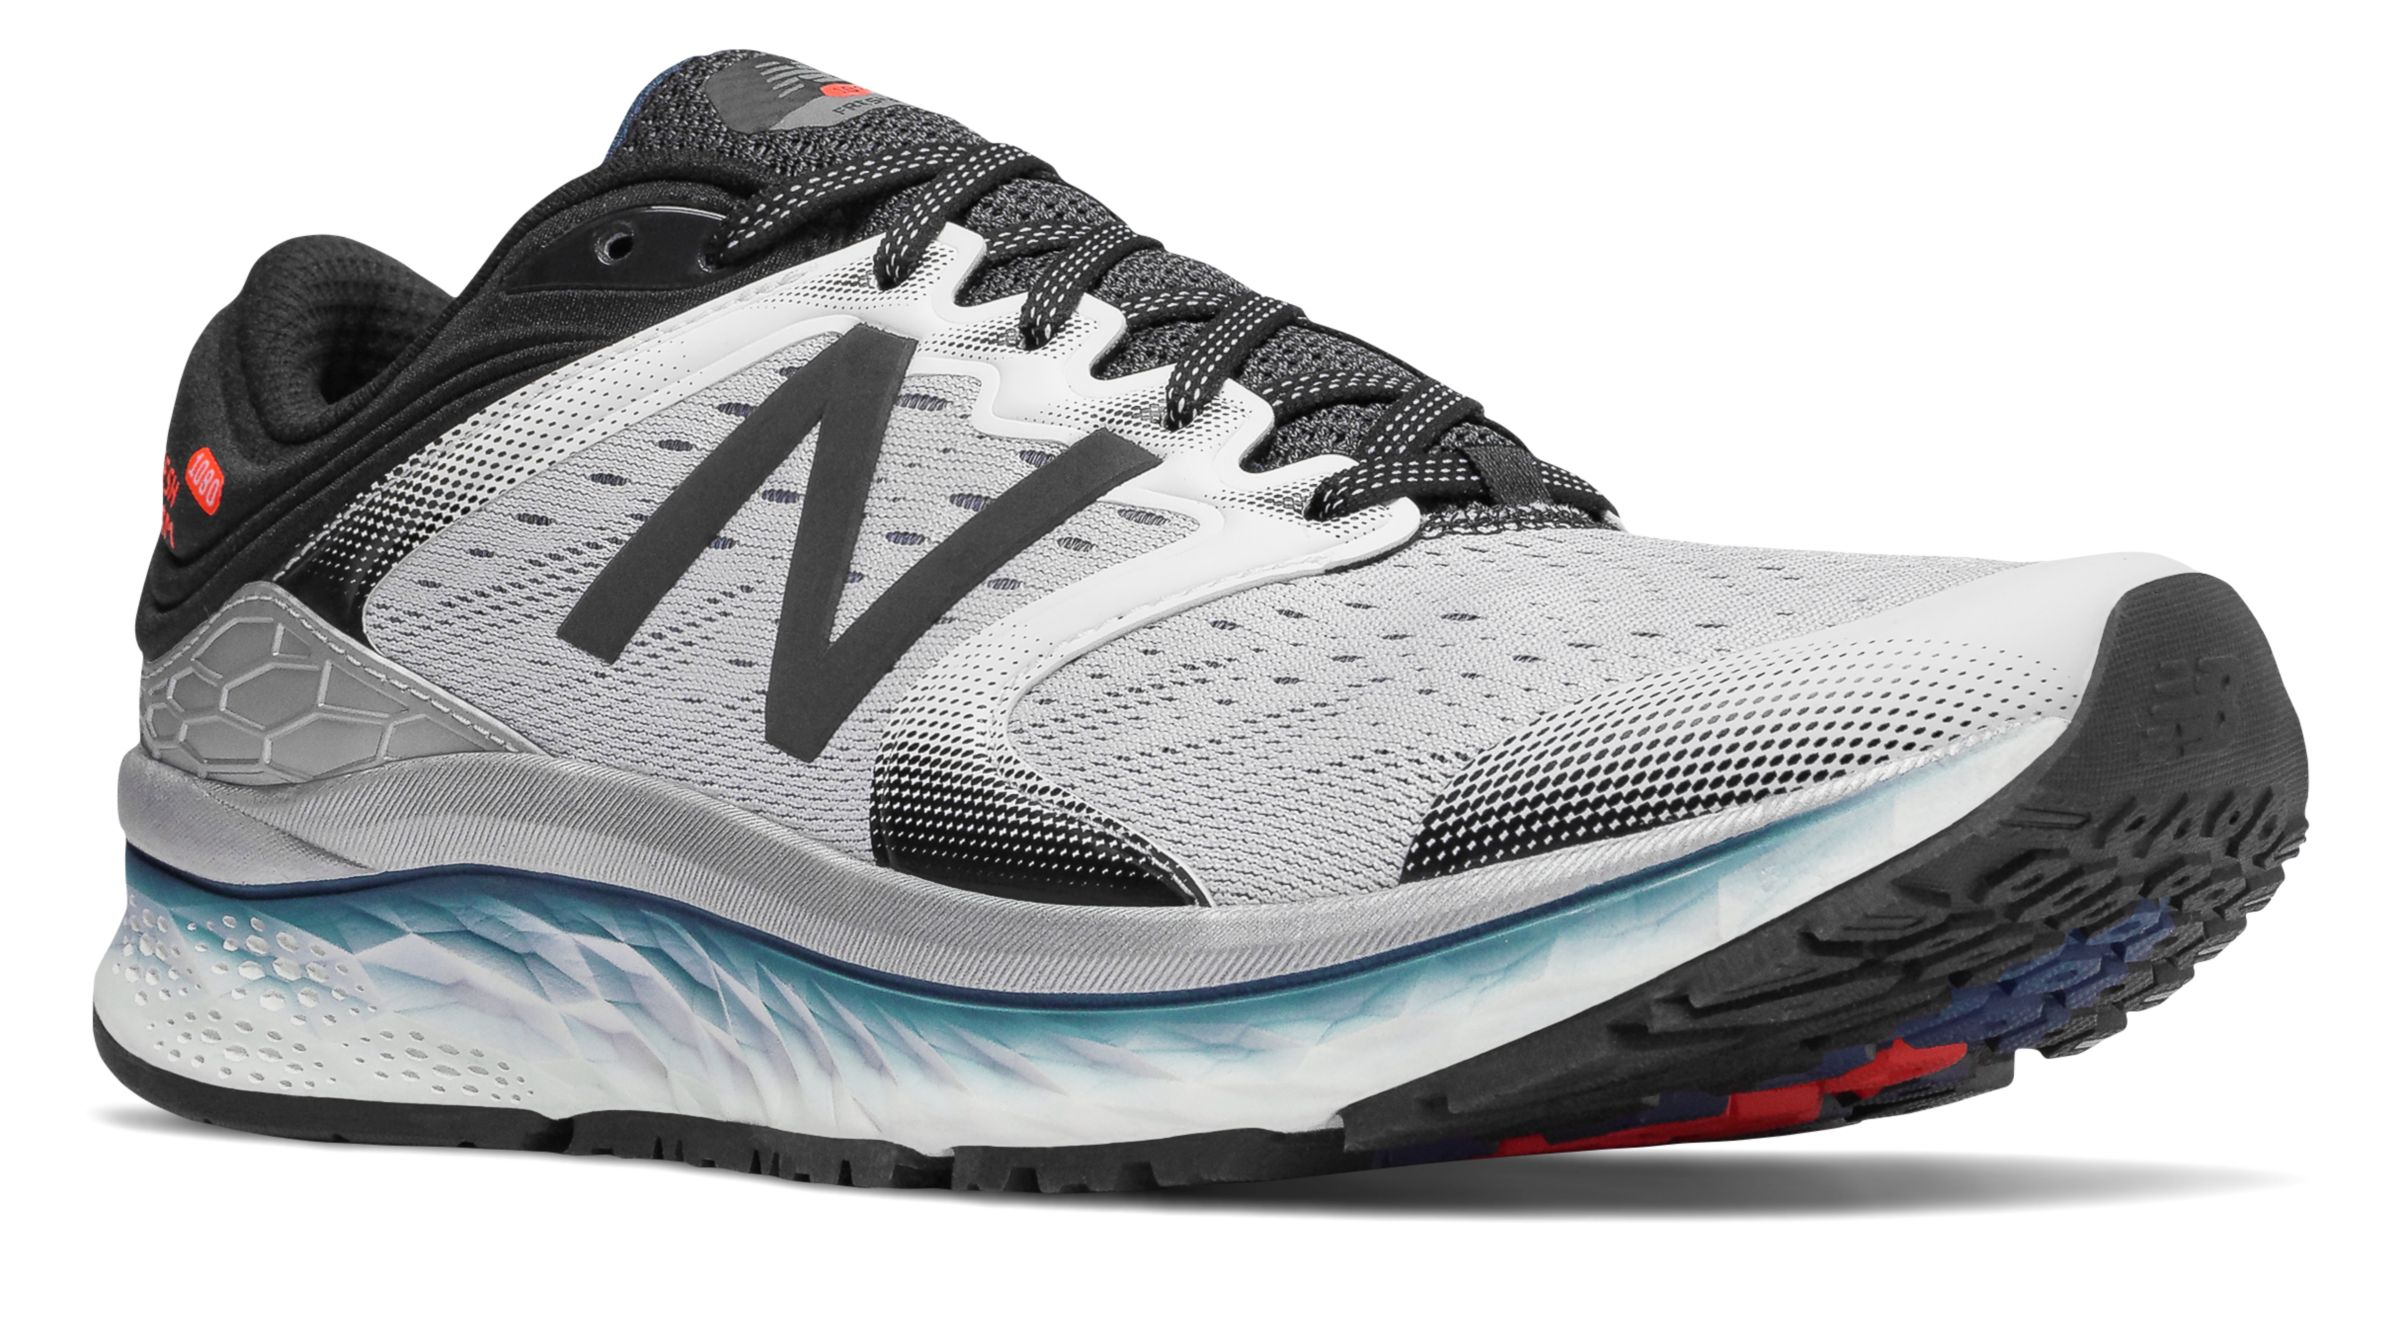 NB Fresh Foam 1080v8, White with Black & North Sea